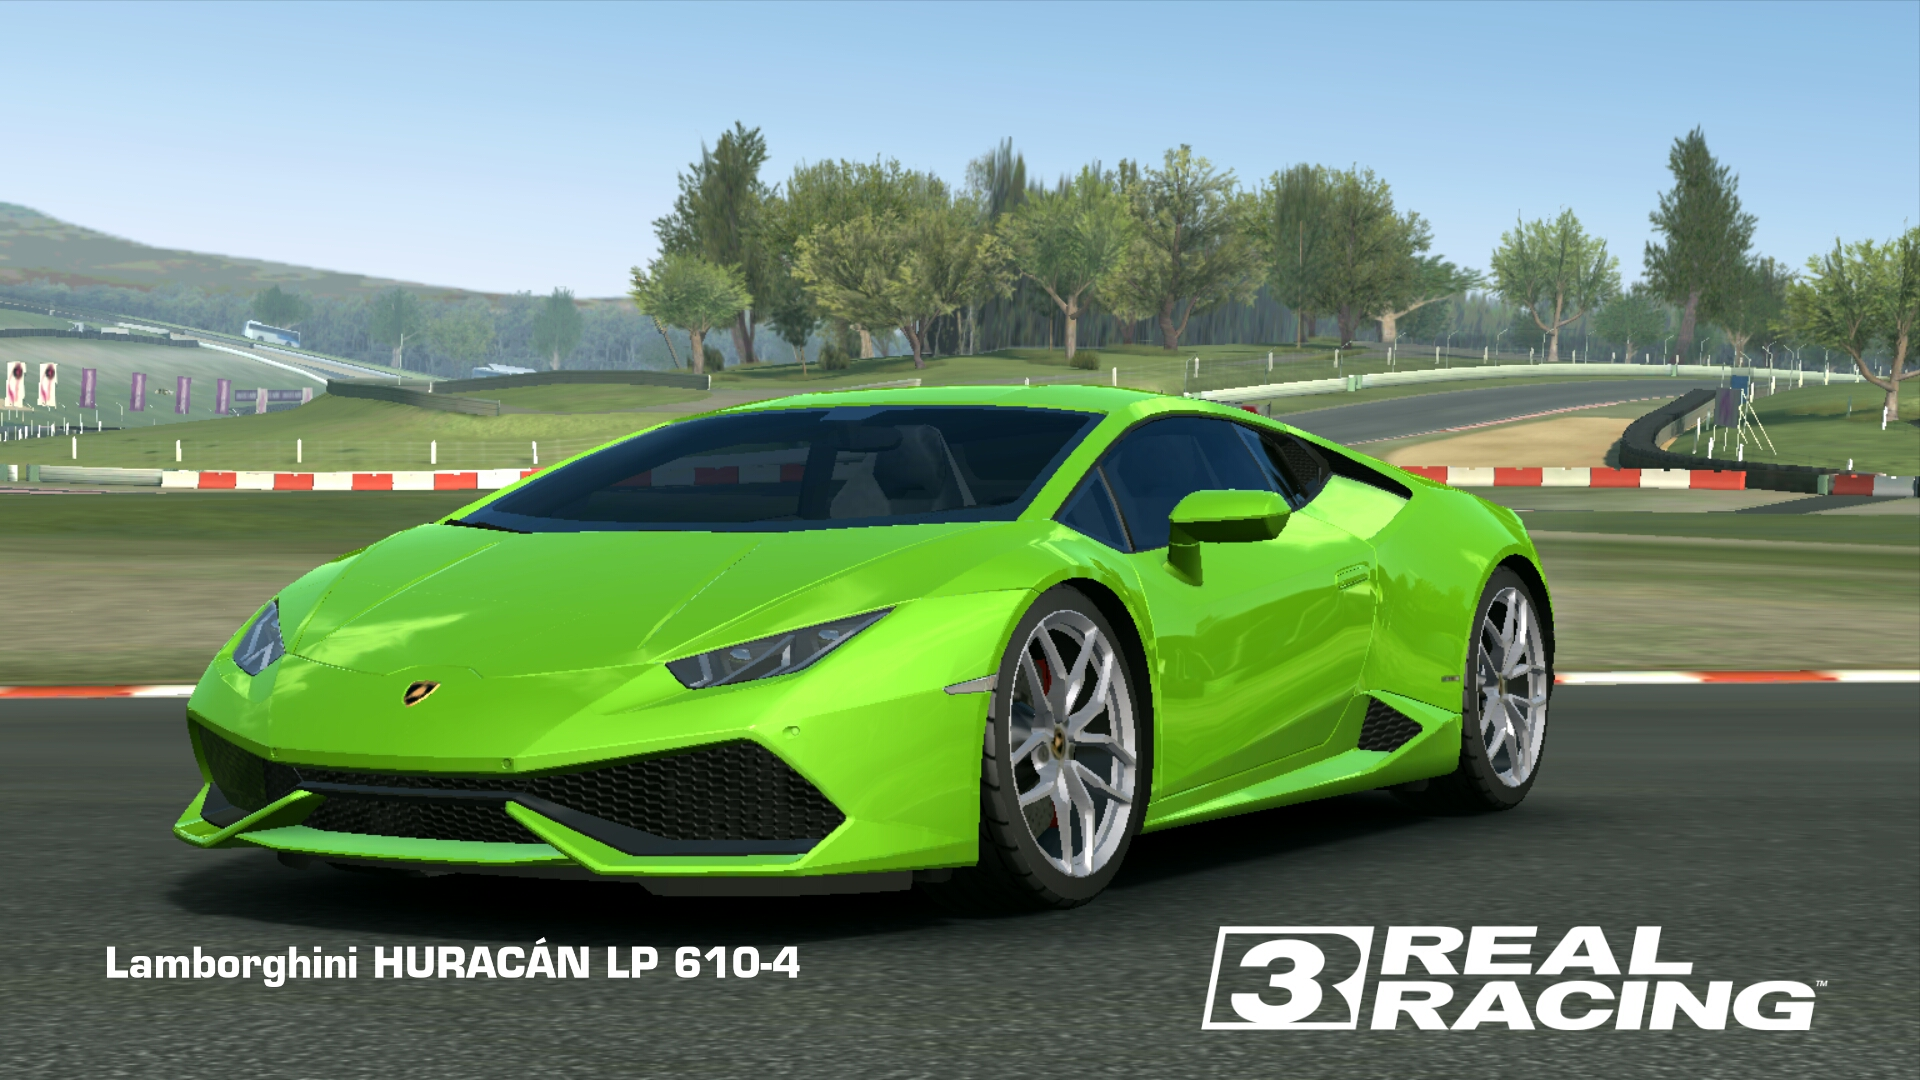 latest?cb=20161128231253 Stunning Lamborghini Huracan Price Real Racing 3 Cars Trend